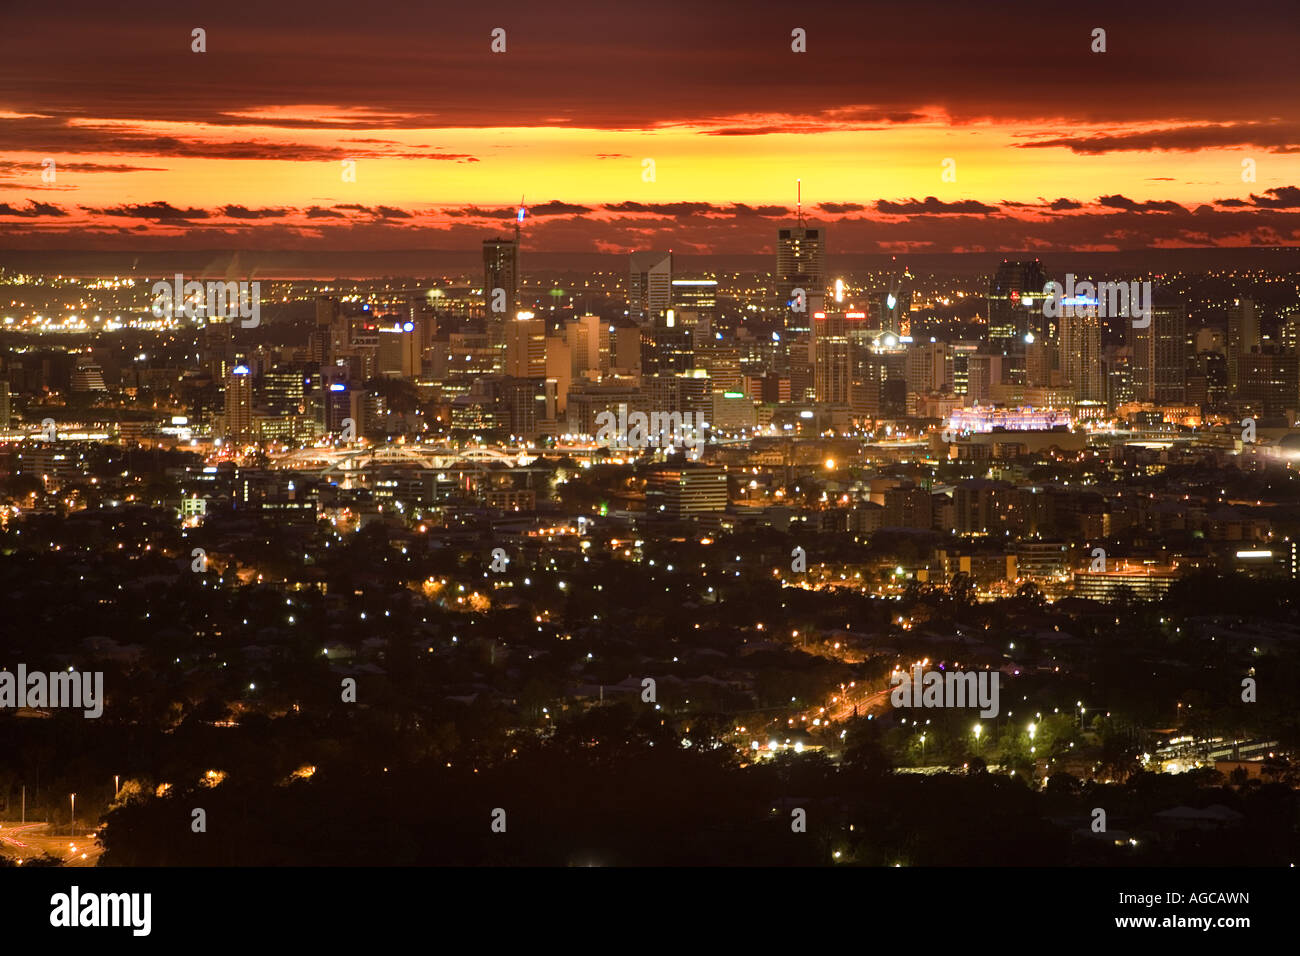 Brisbane, Australia at sunrise - Stock Image